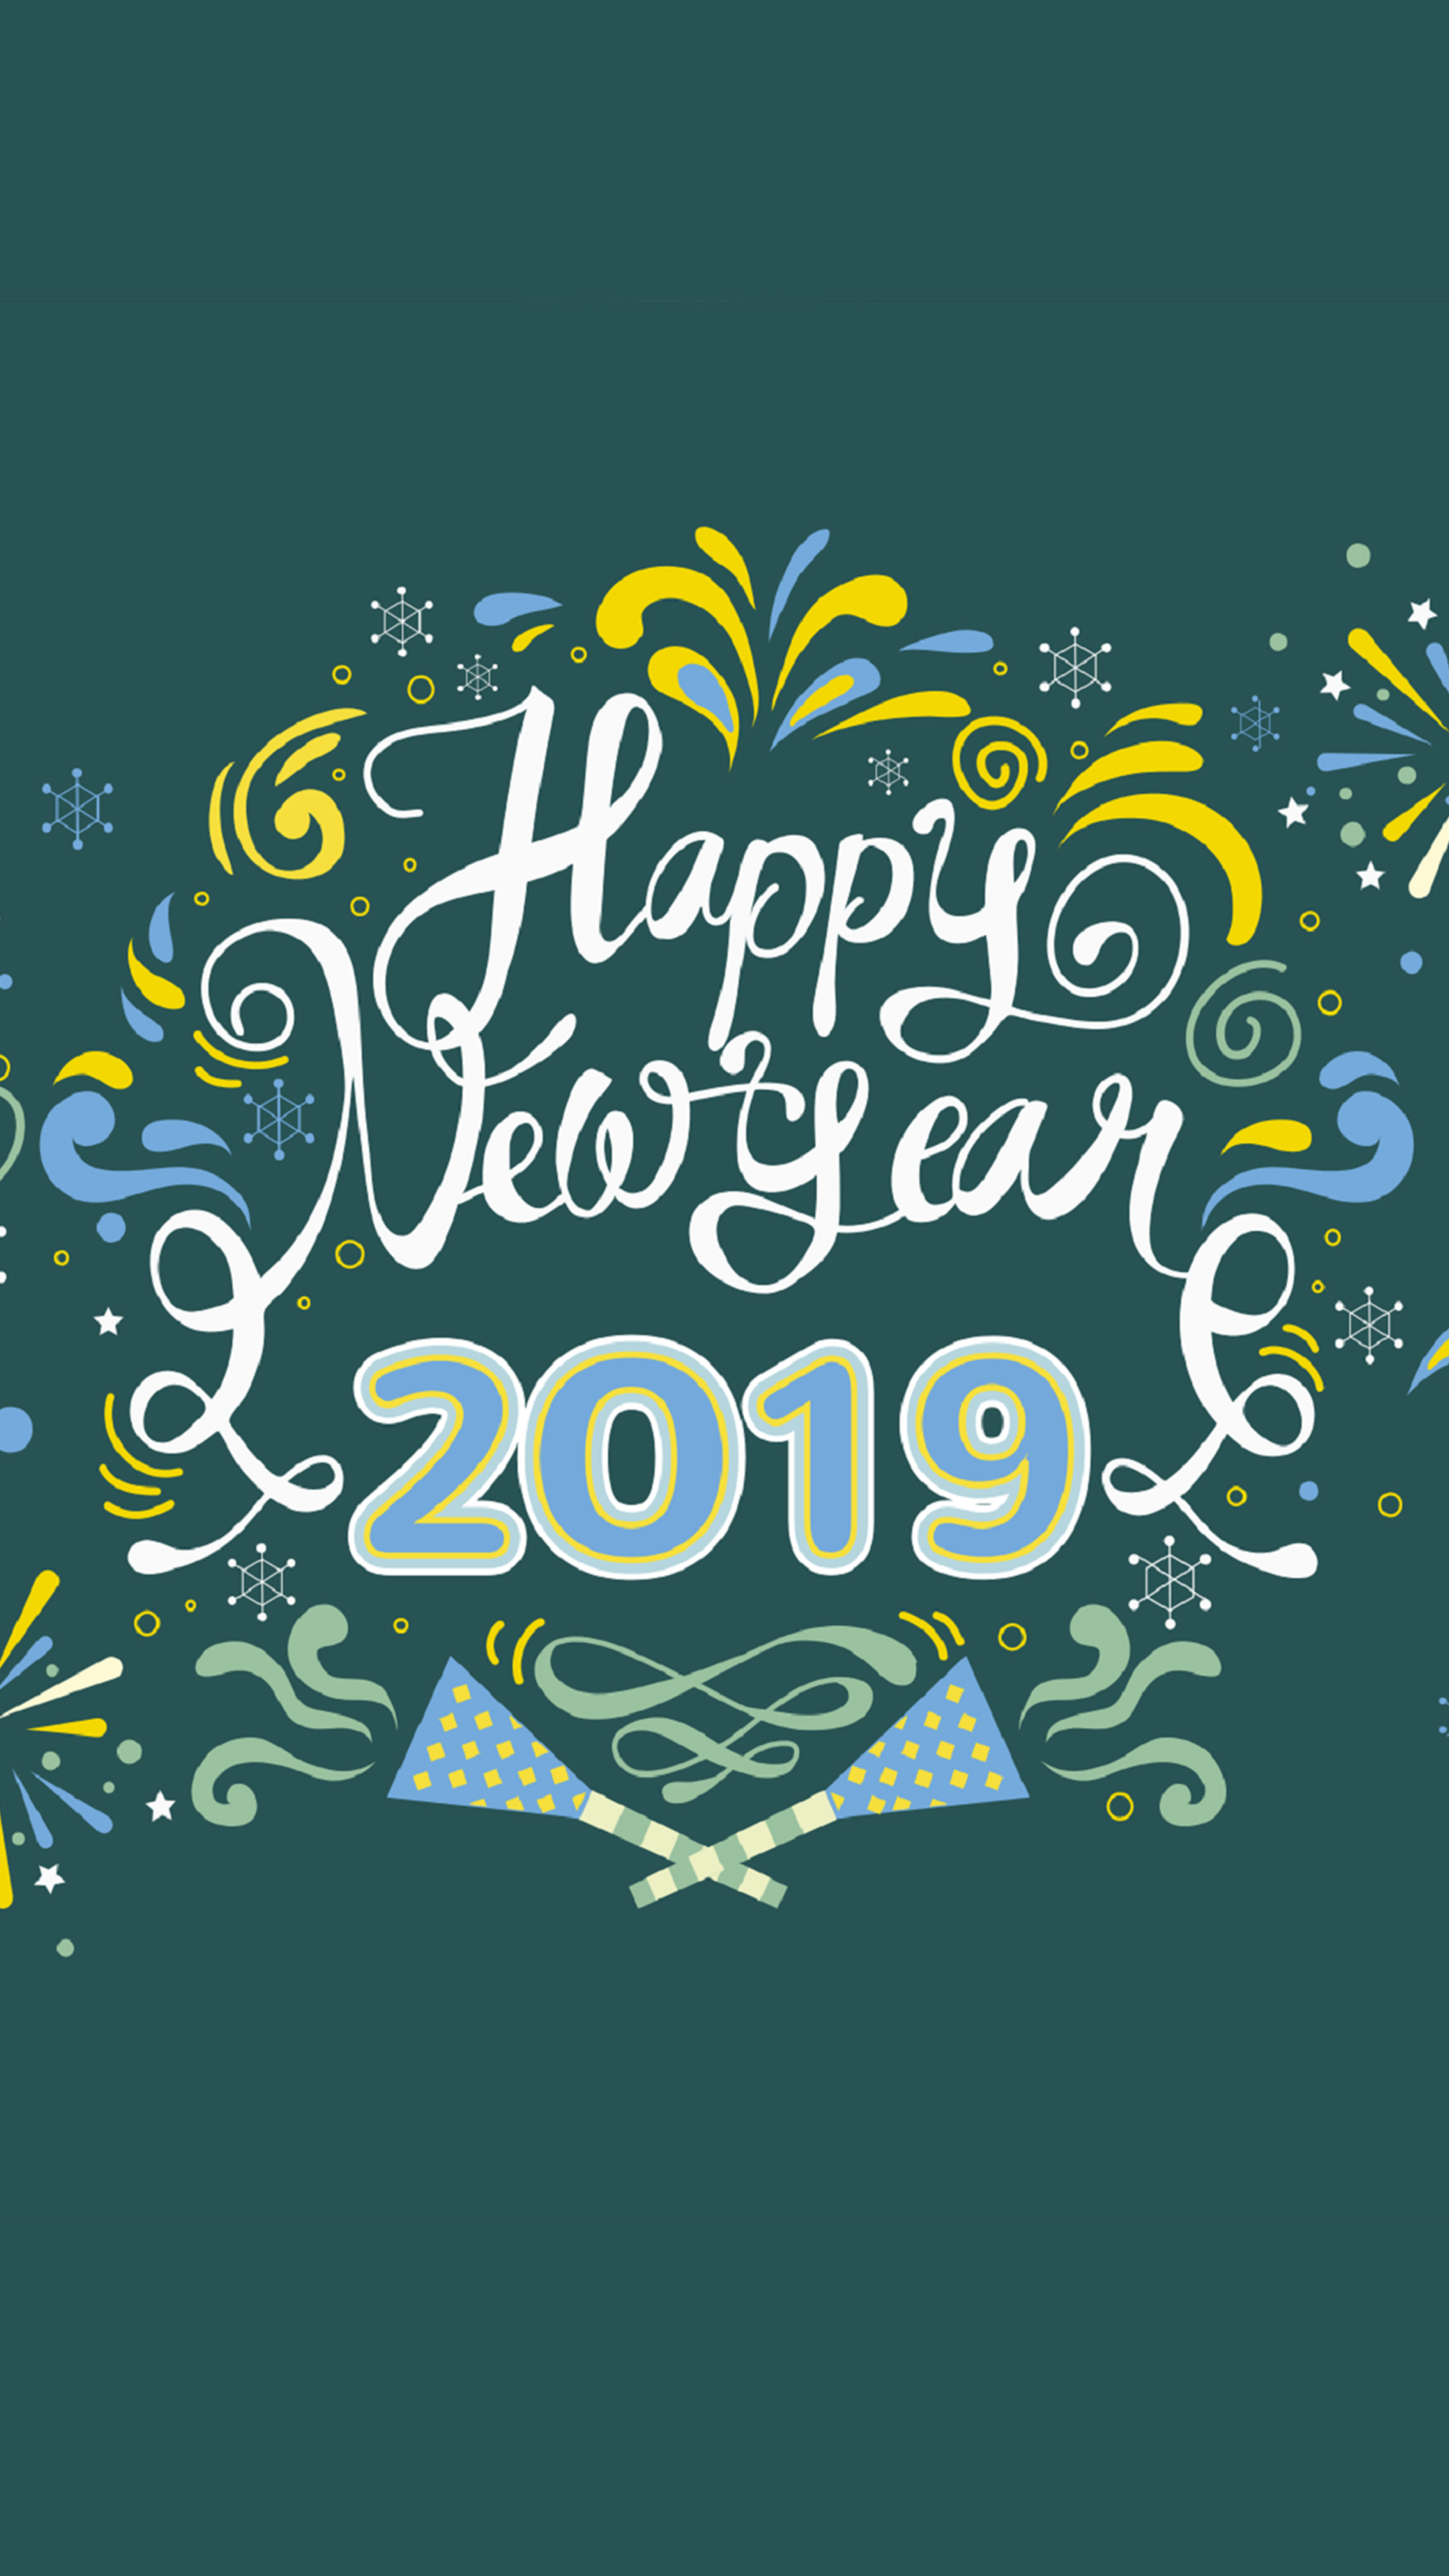 Download Happy New Year 2019 Free Pure 4k Ultra Hd Mobile Wallpaper